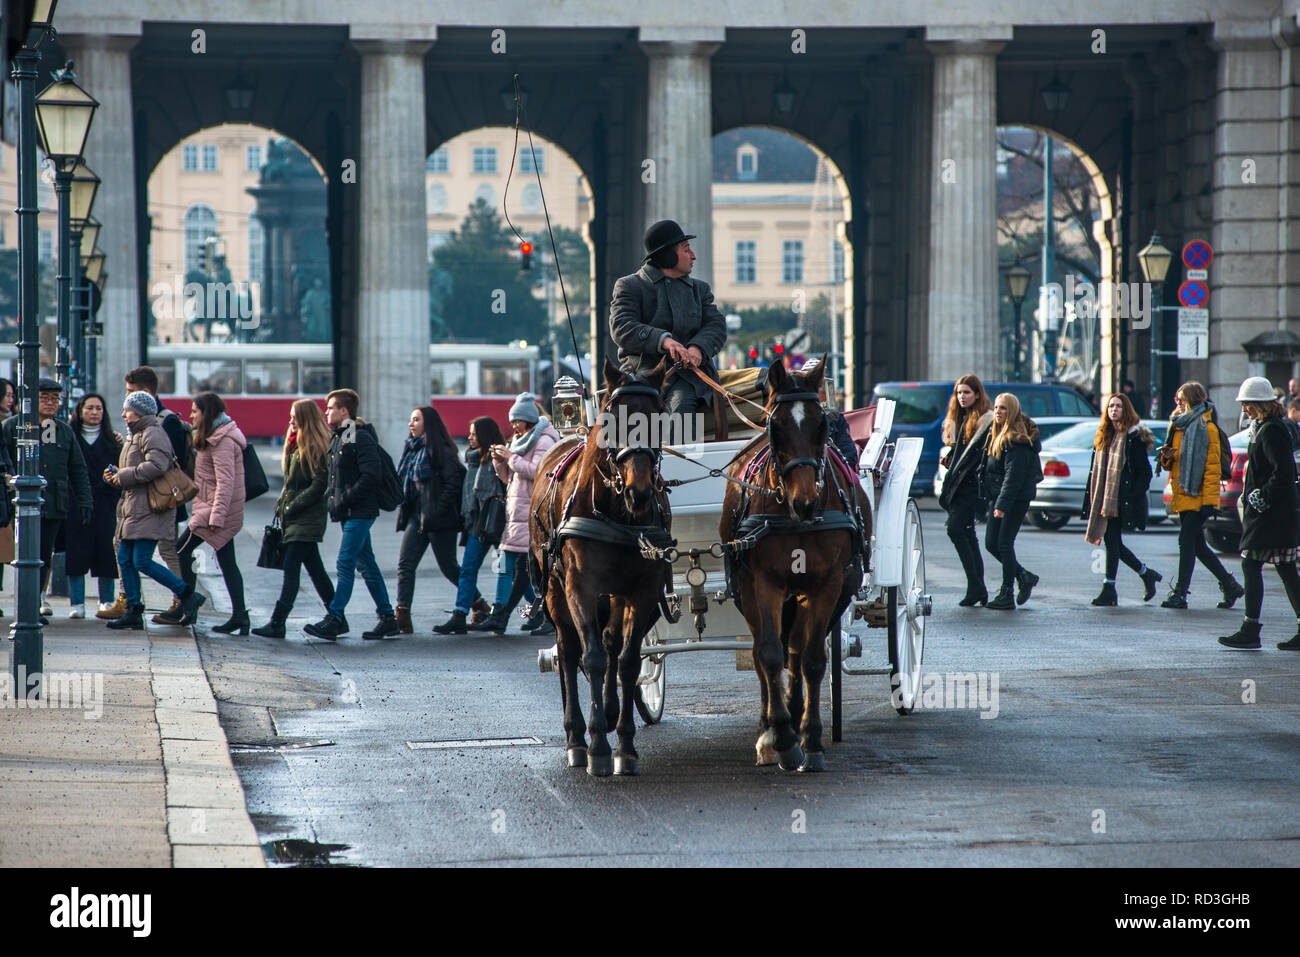 Vienna horse and carriage at Hofburg palace, Austria. Stock Photo